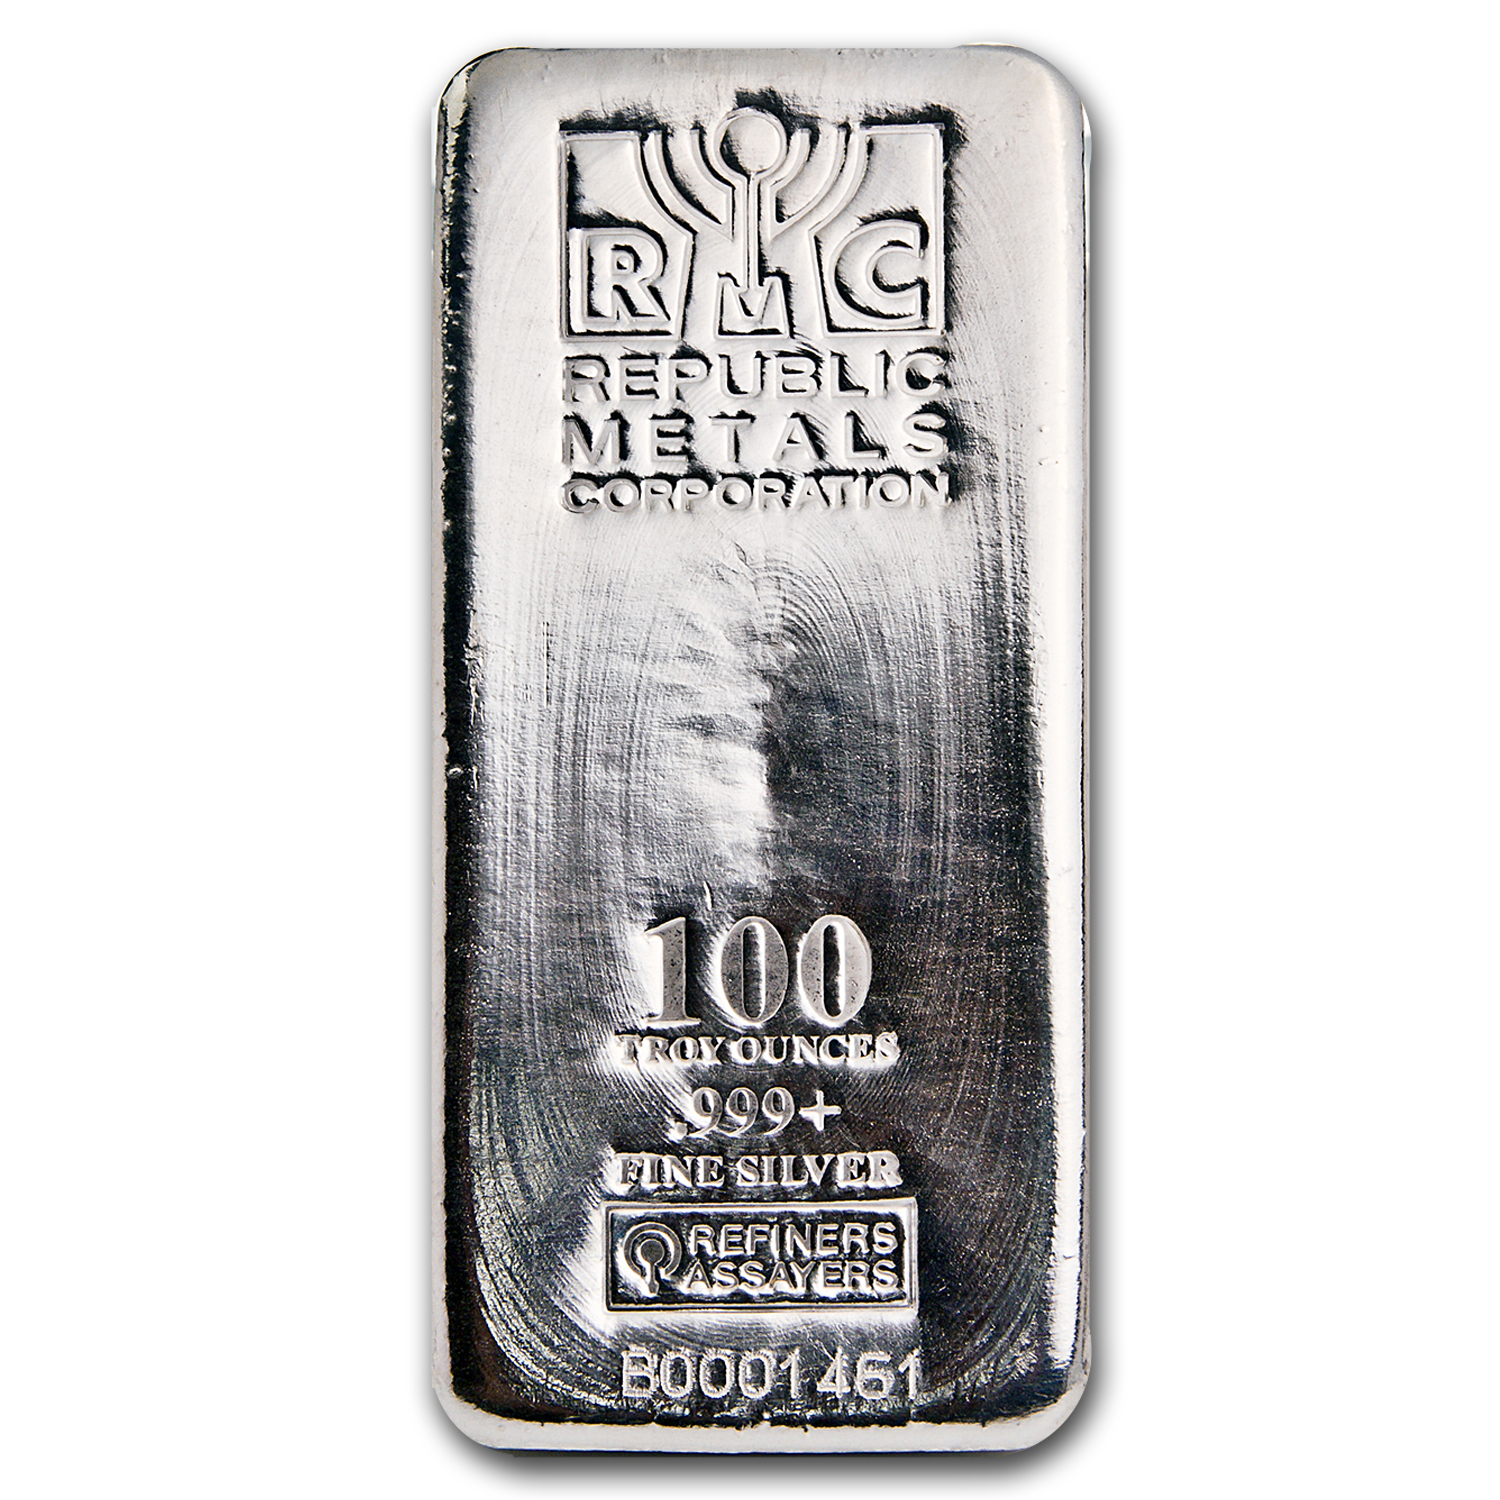 100 oz Silver Bar - Republic Metals Corp. (RMC)